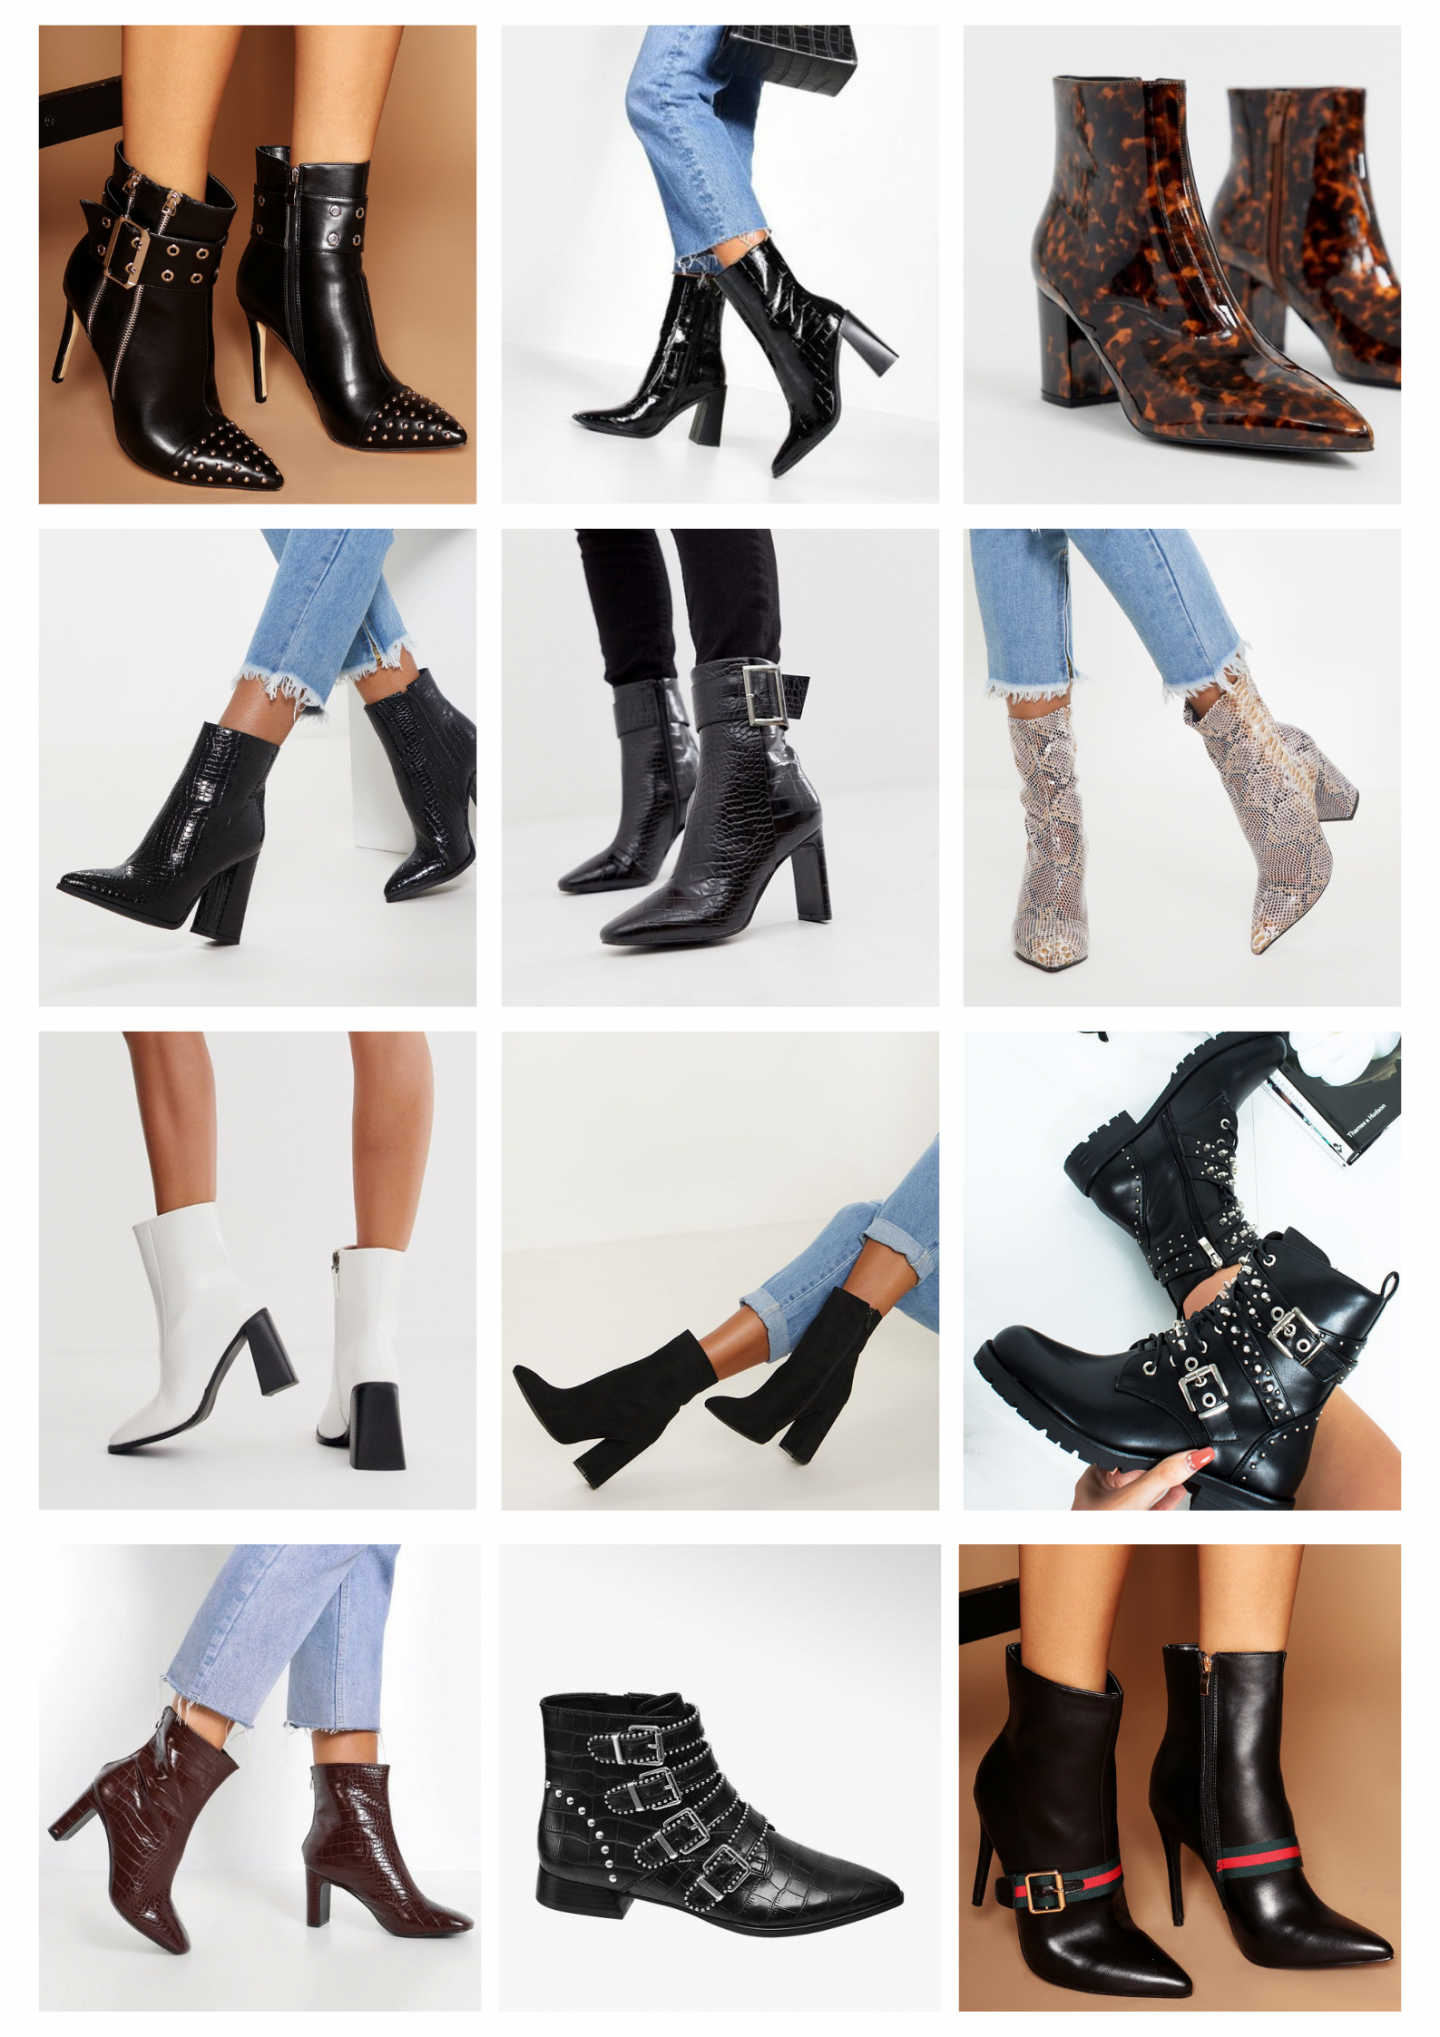 TOP 12 STYLISH ANKLE BOOTS UNDER £40 FOR AUTUMN 2019